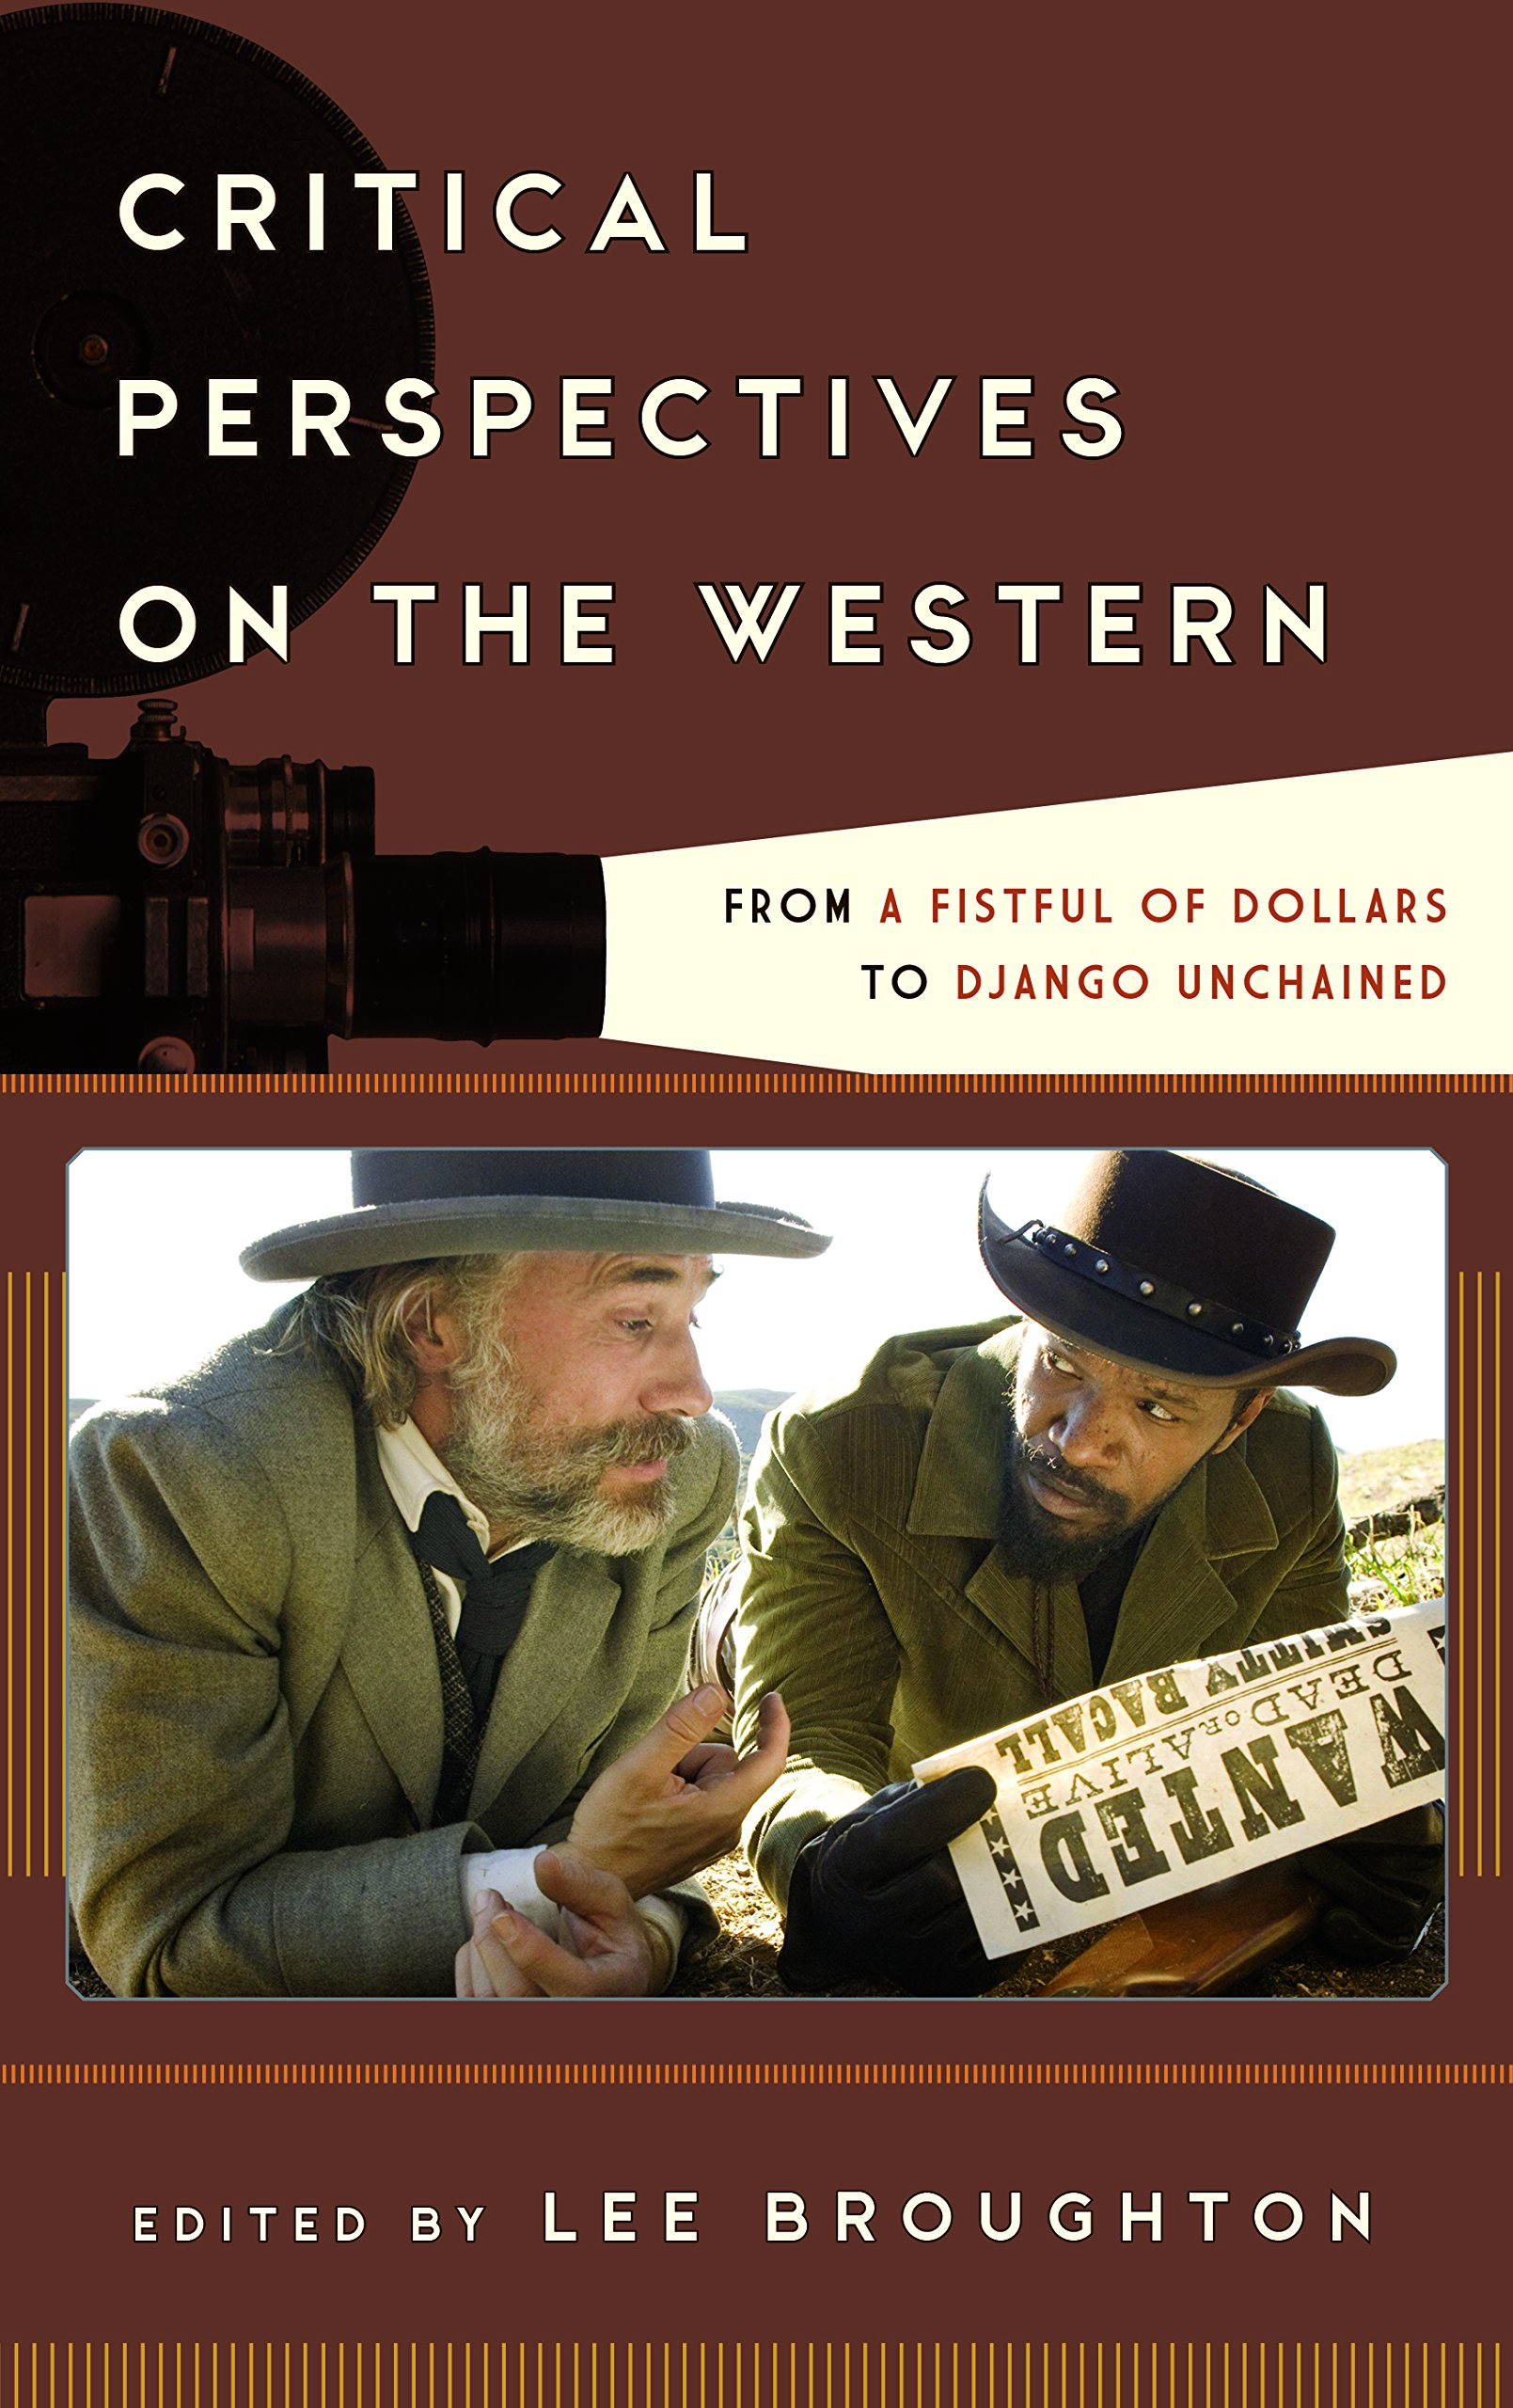 Critical Perspectives on the Western: From a Fistful of Dollars to Django Unchained